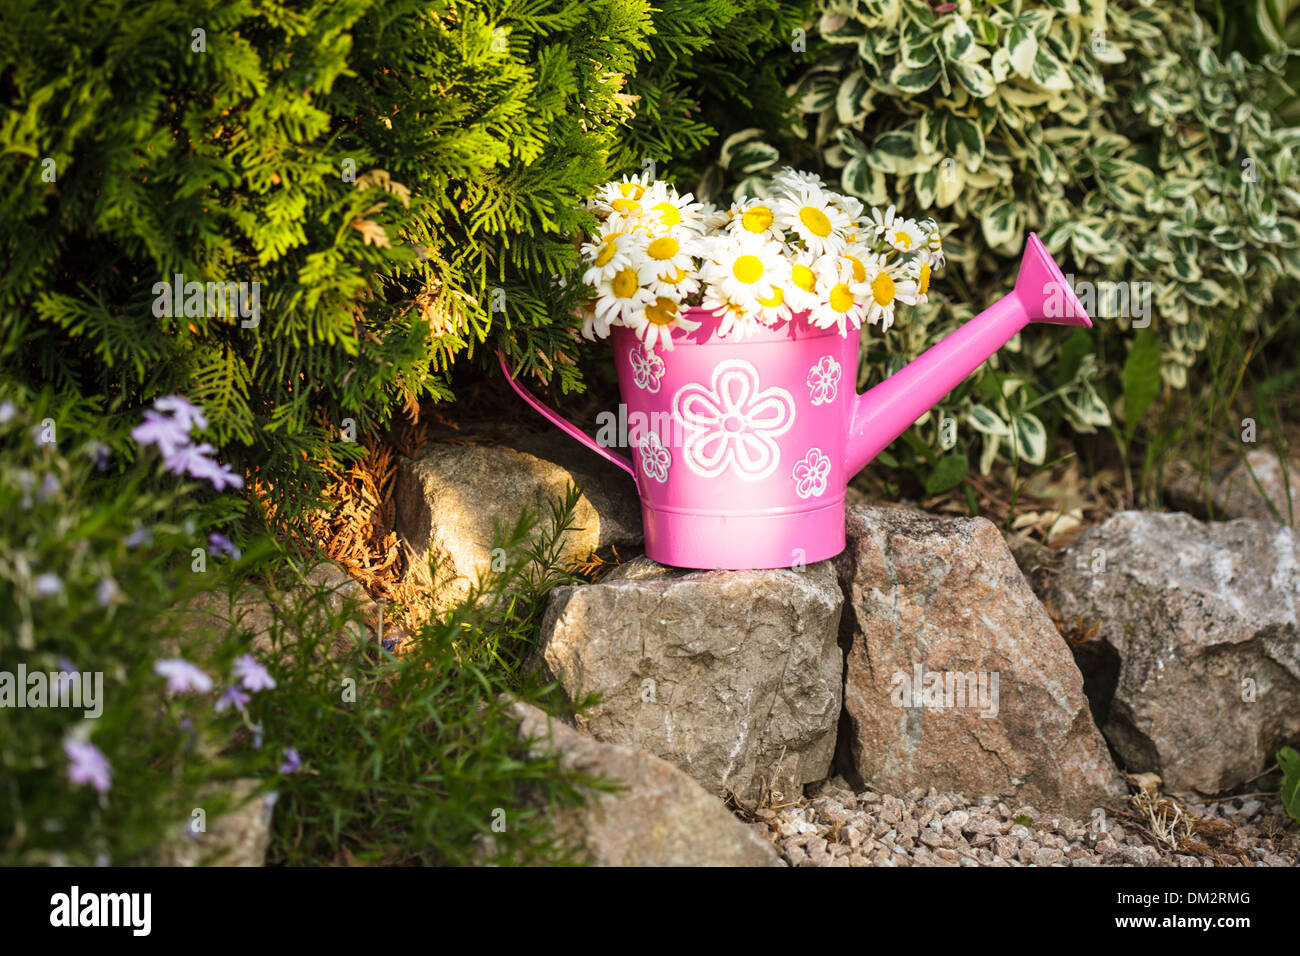 Daisies in a rustic watering can on rock garden - Stock Image